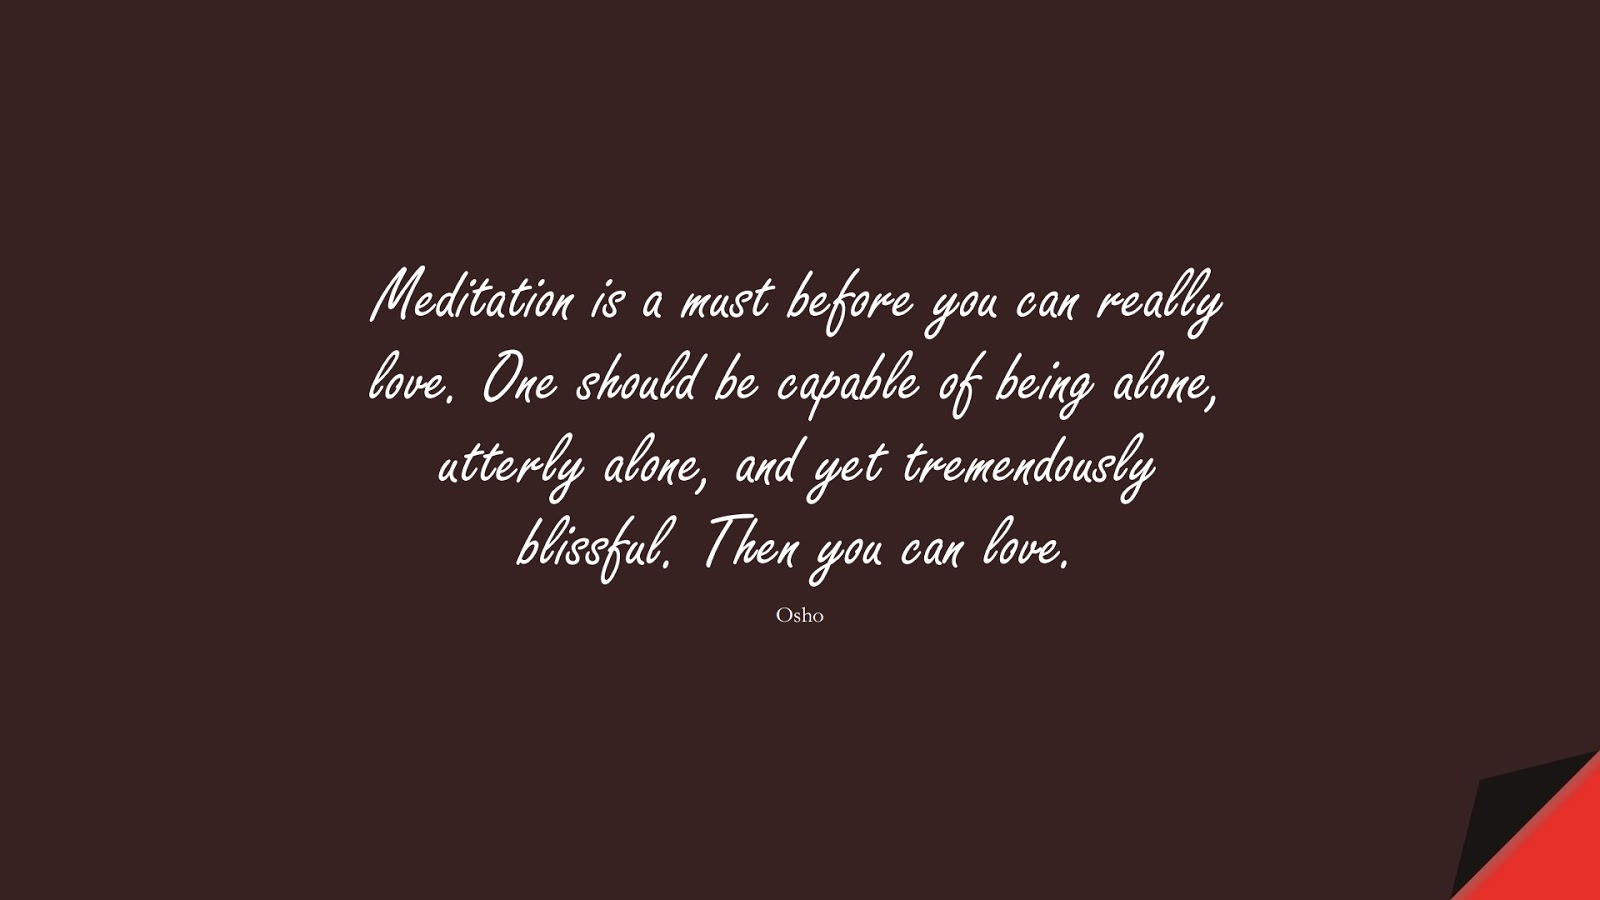 Meditation is a must before you can really love. One should be capable of being alone, utterly alone, and yet tremendously blissful. Then you can love. (Osho);  #LoveYourselfQuotes